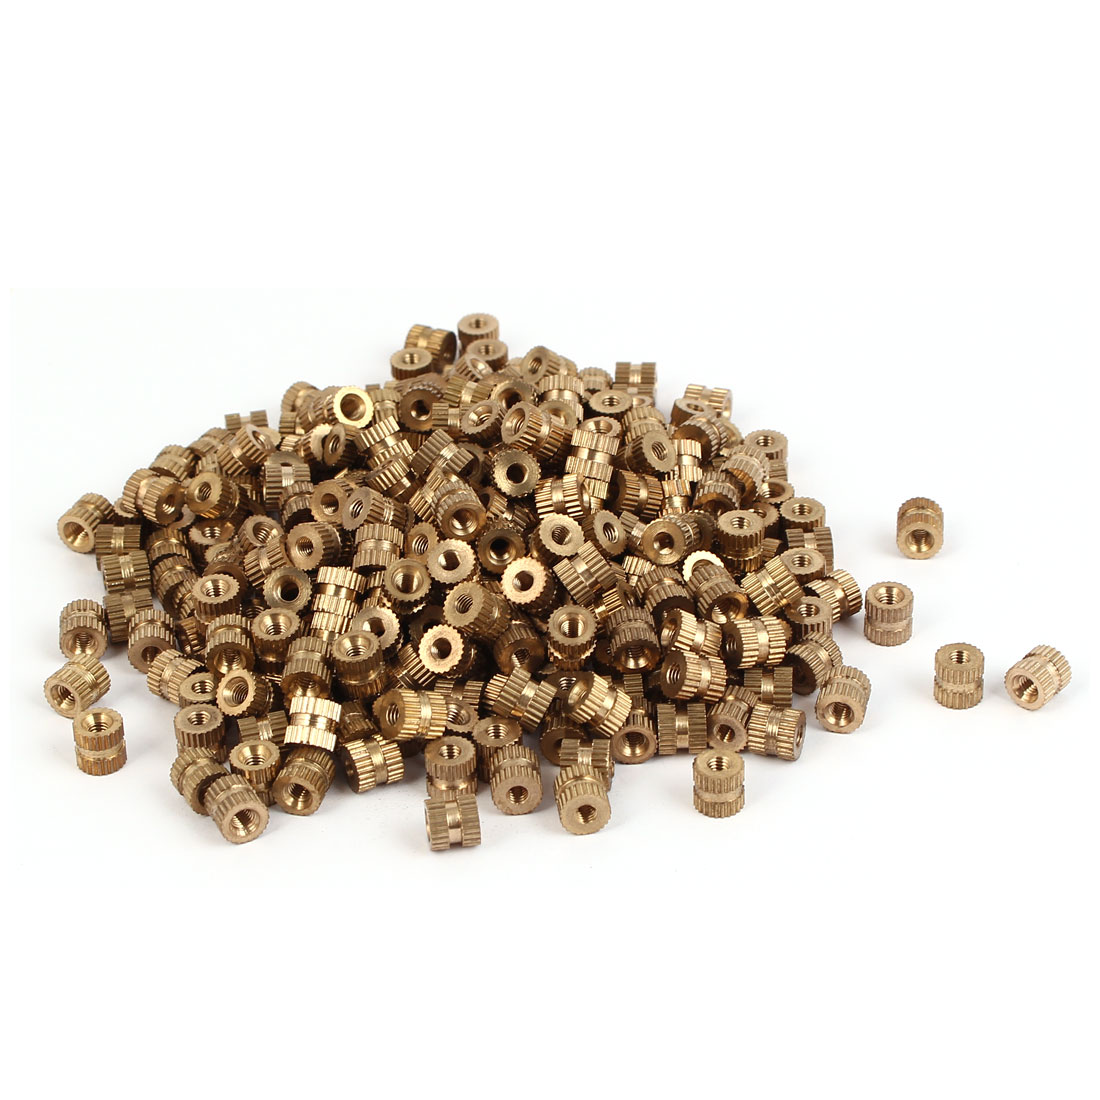 M3 x 6mm Brass Cylinder Injection Molding Knurled Threaded Embedment Nuts 500PCS